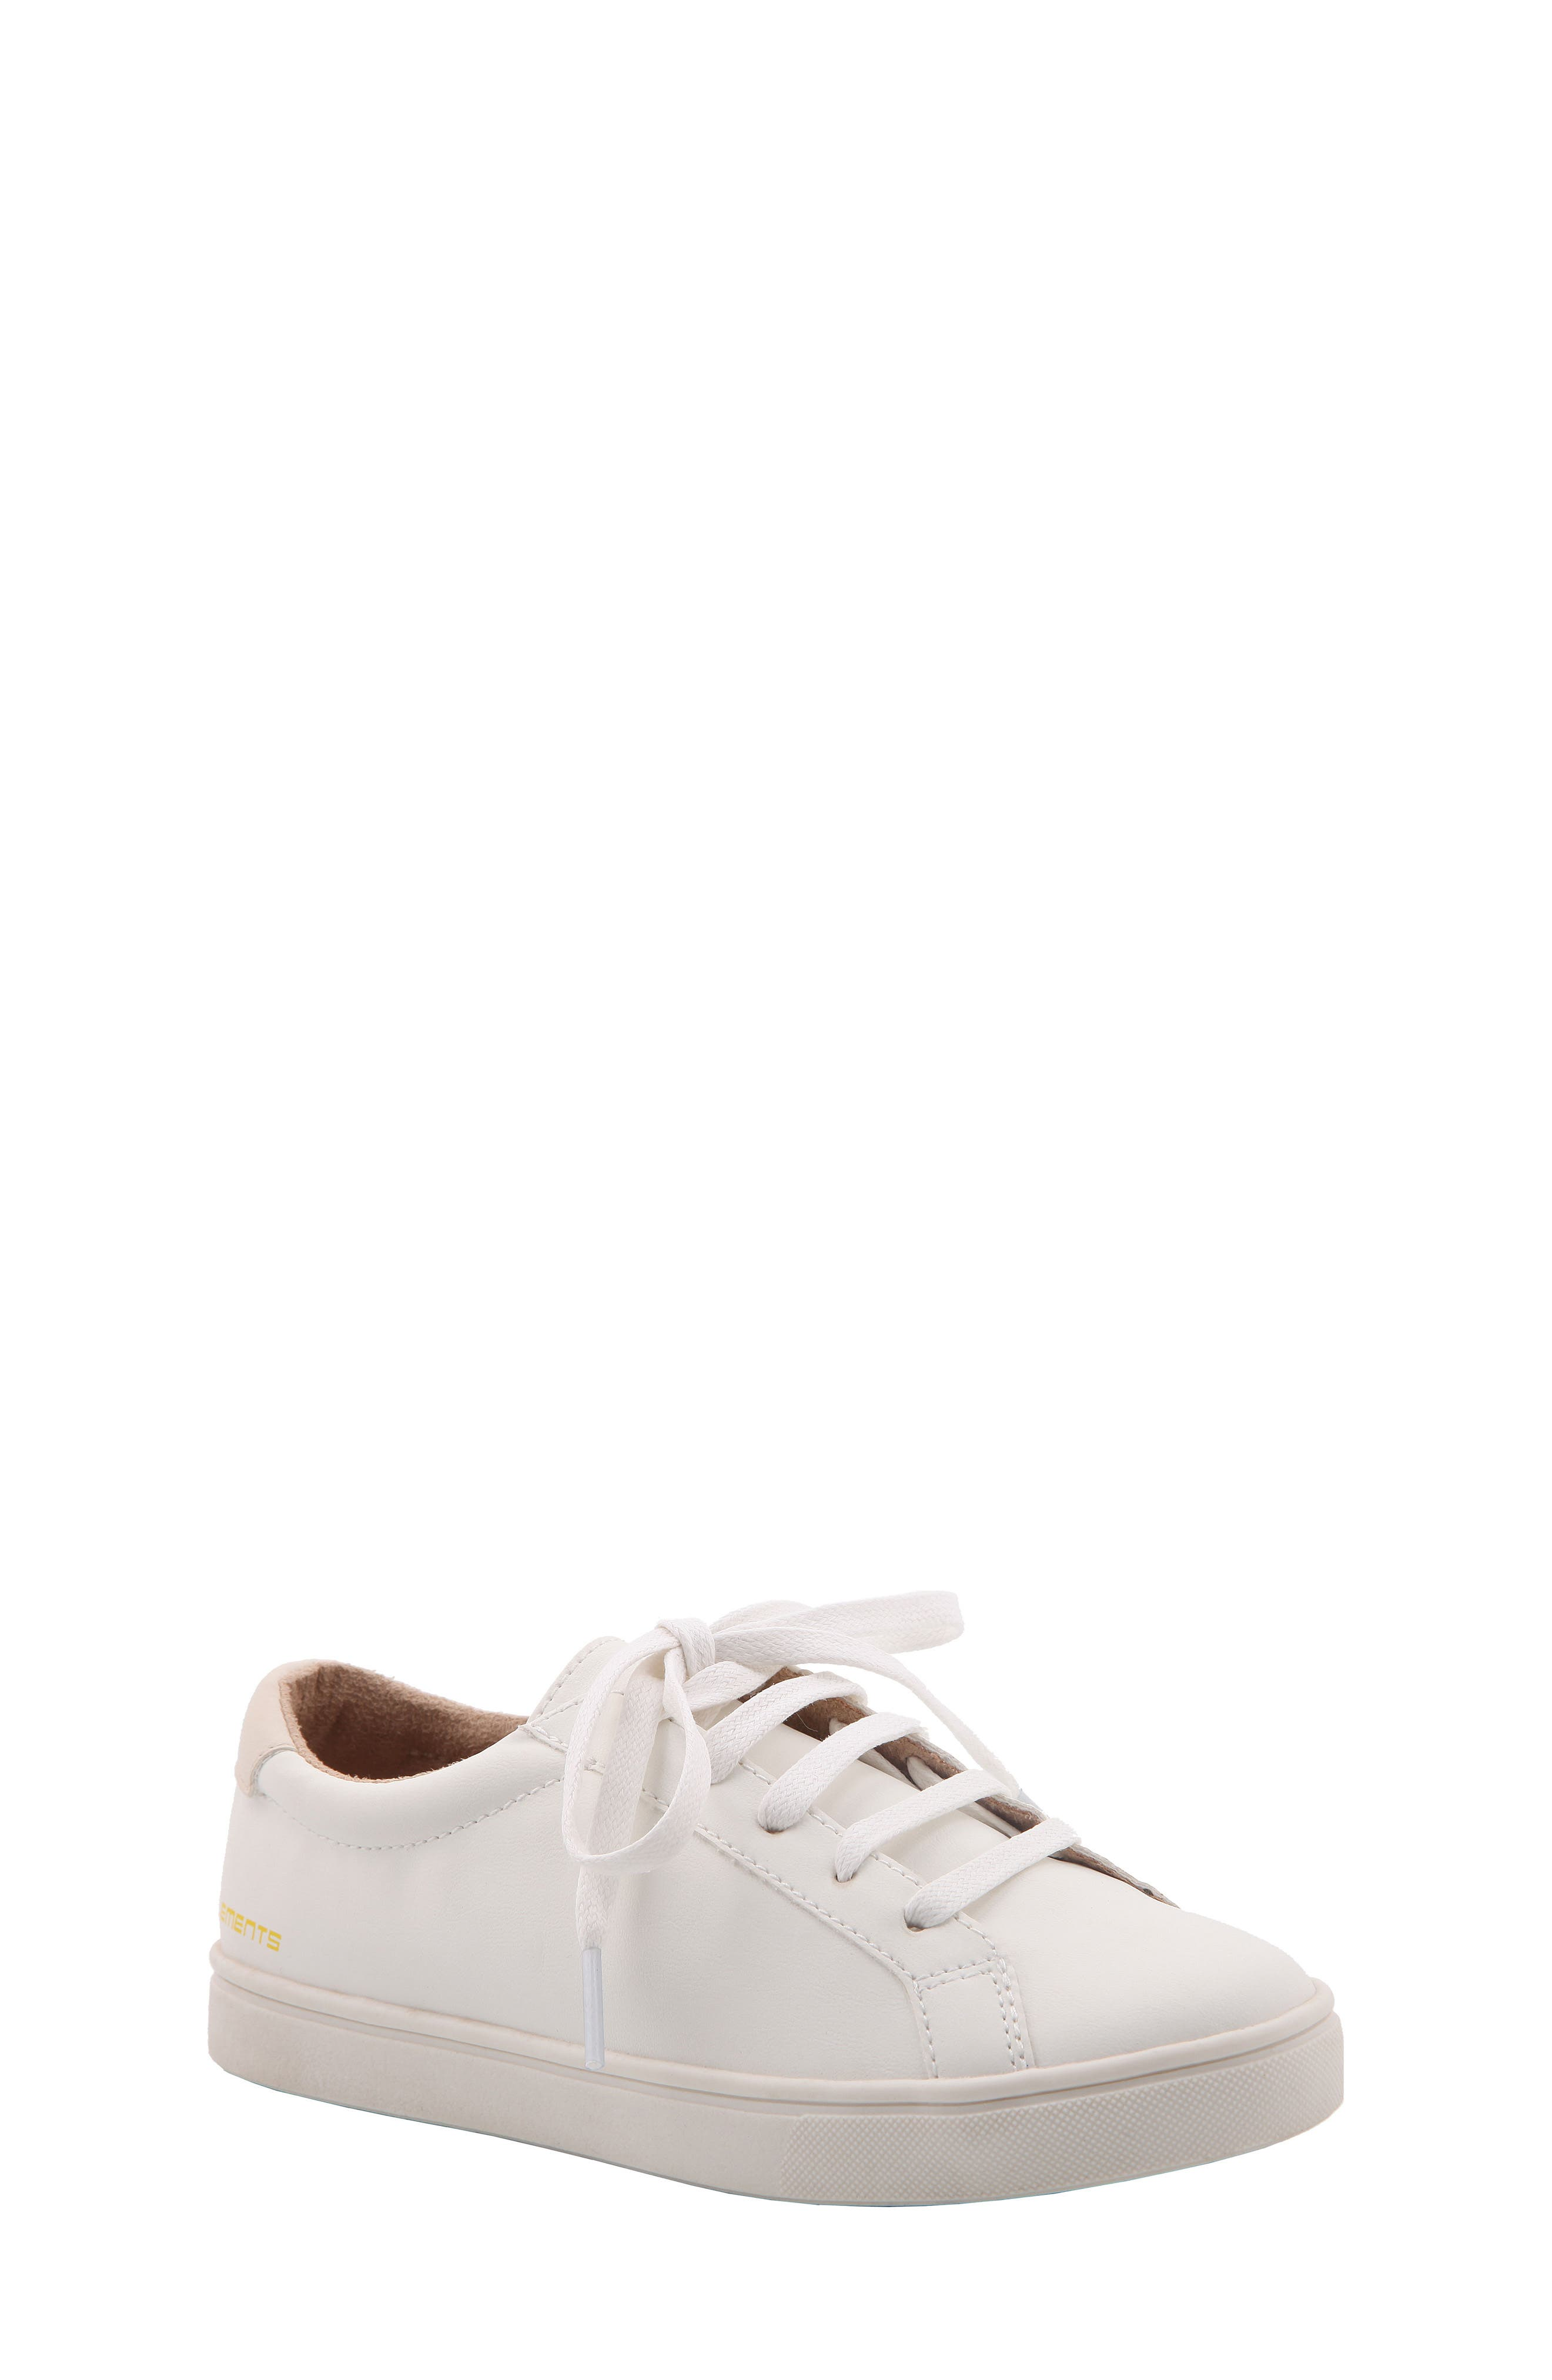 Chaz Sneaker,                             Main thumbnail 1, color,                             White Faux Leather